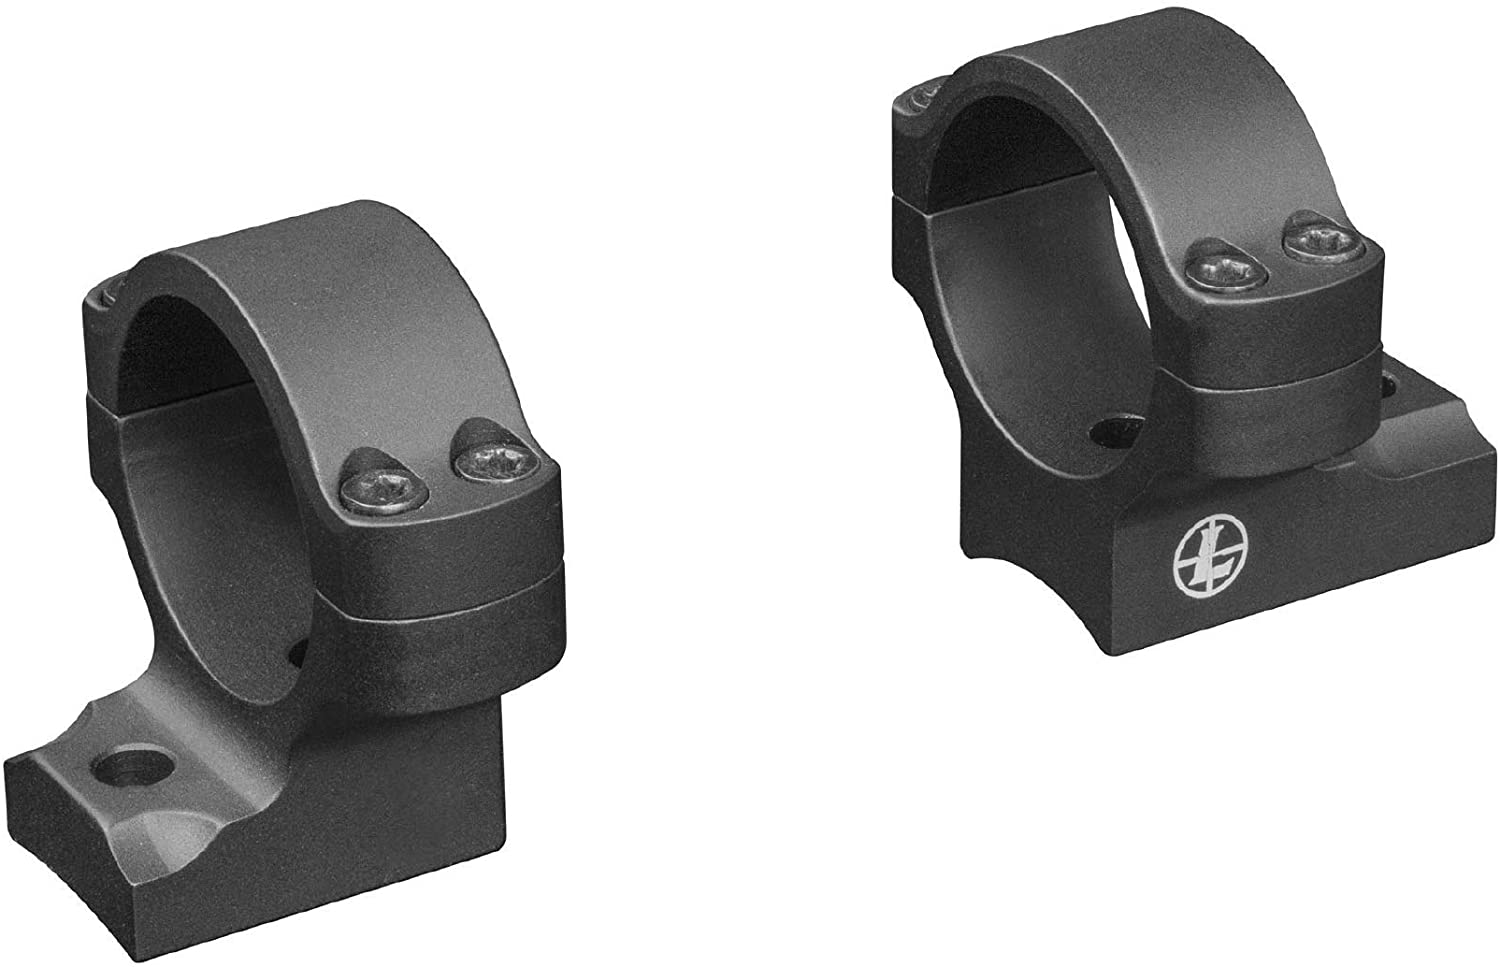 Leupold BackCountry Two-Piece Scope New item Mount shop